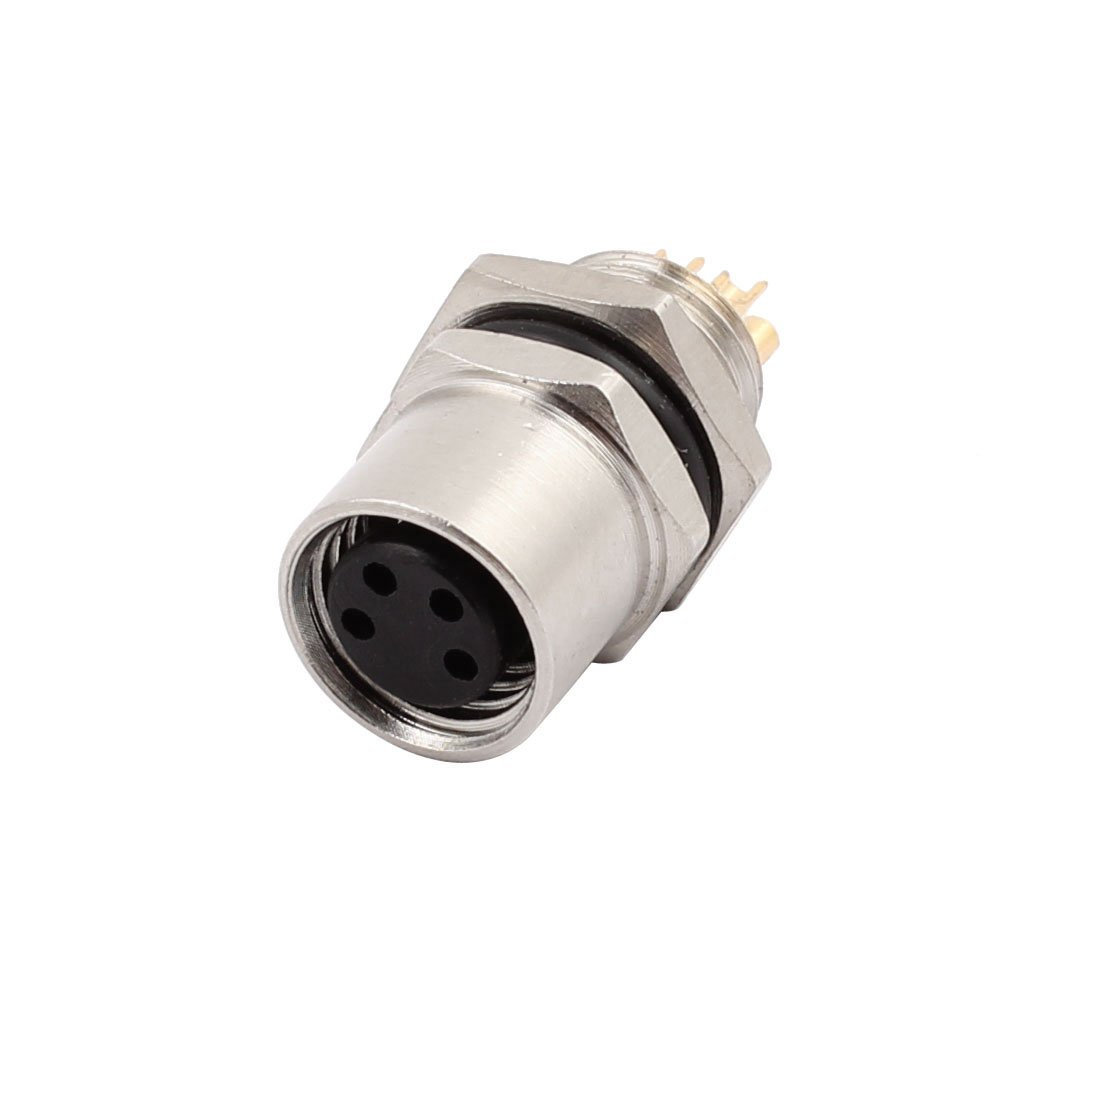 M8-4 AC 30V 4A 4P 8mm Thread Flange Male Waterproof Cable Connector